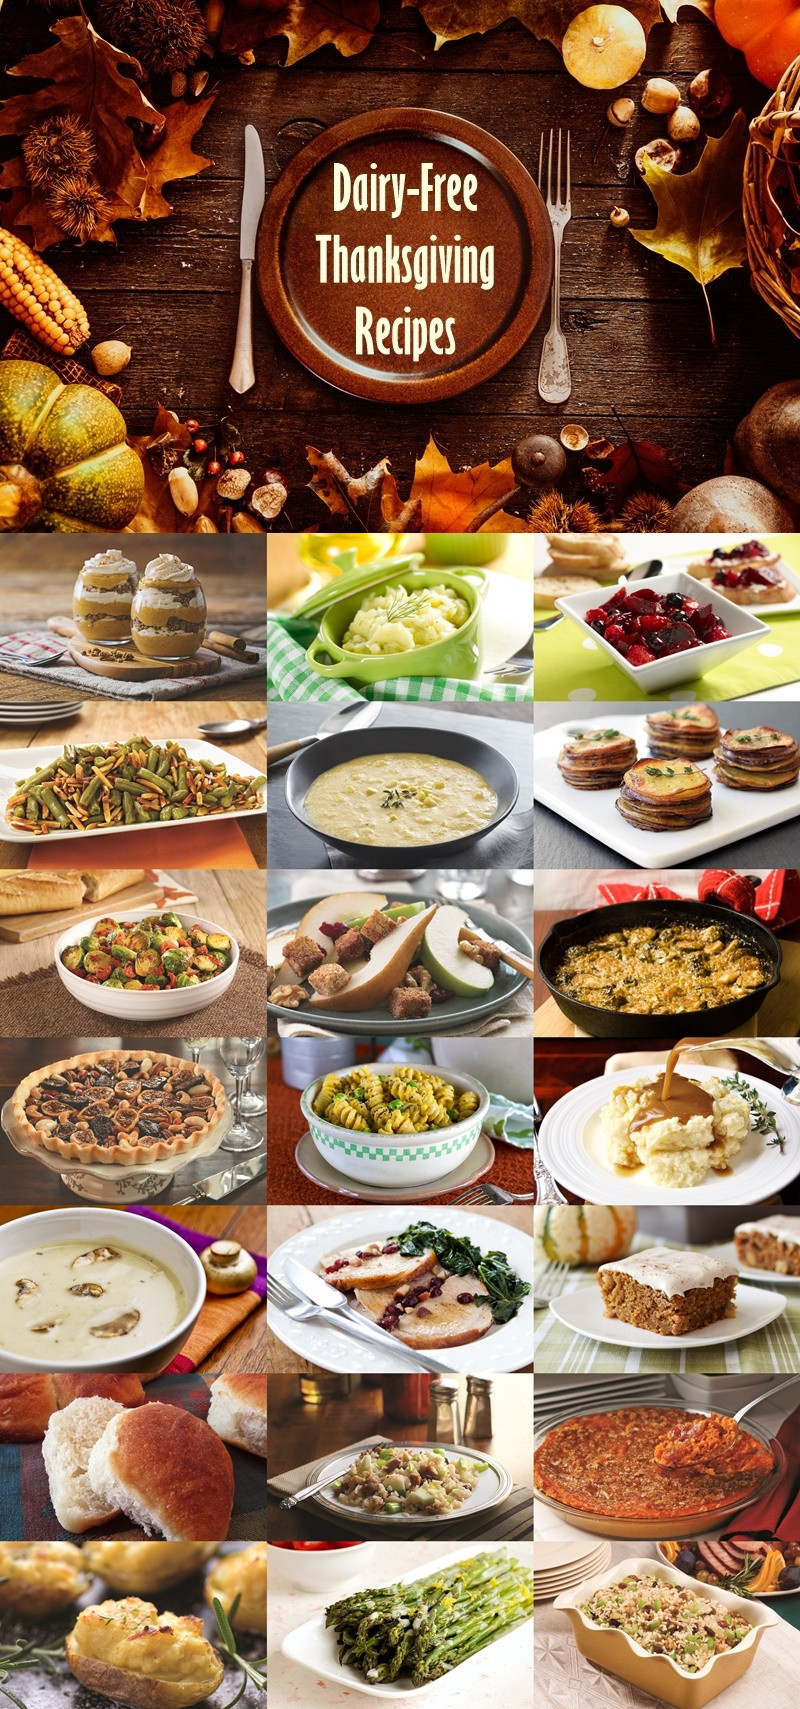 Dairy Free Recipes  The Biggest Gathering of Dairy Free Thanksgiving Recipes